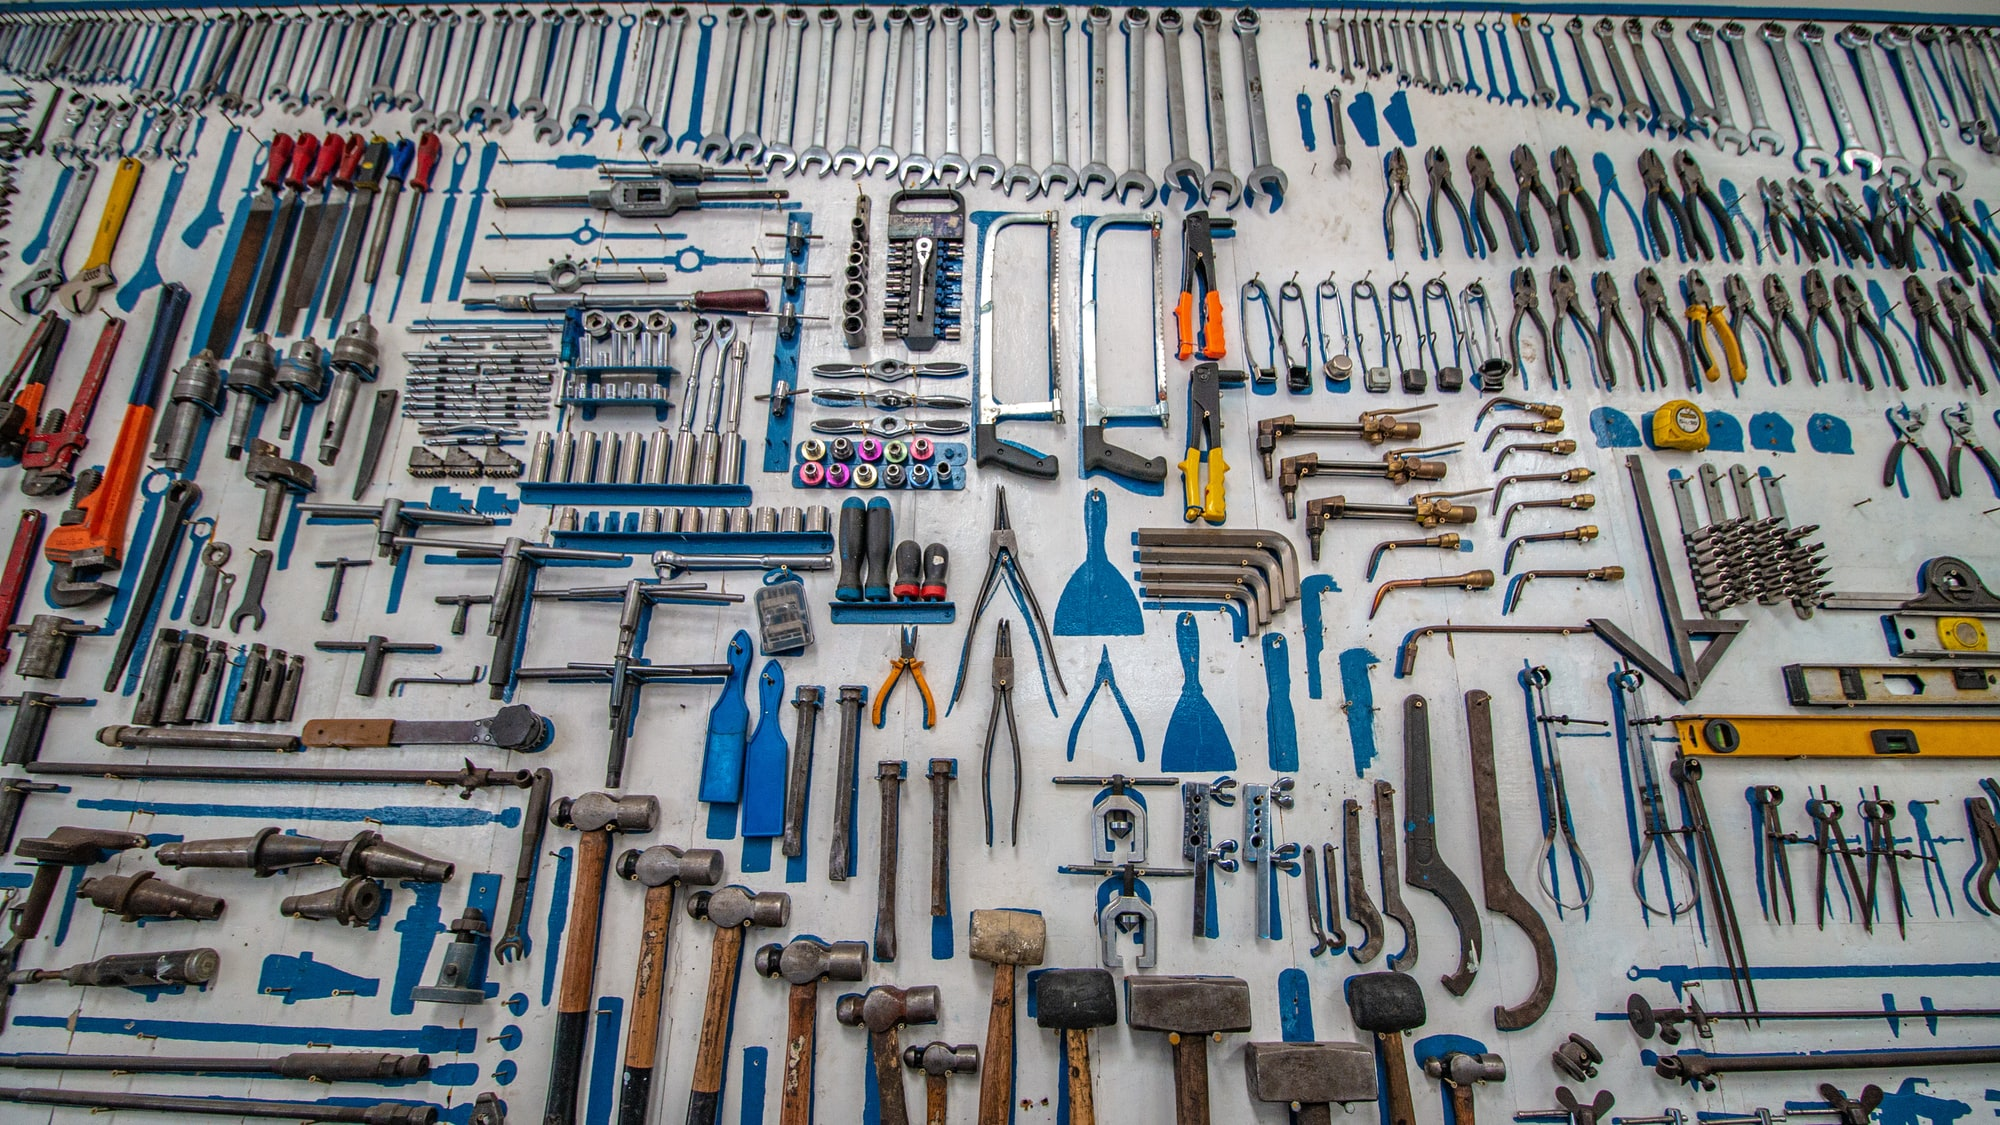 Open Source Program Management Tools